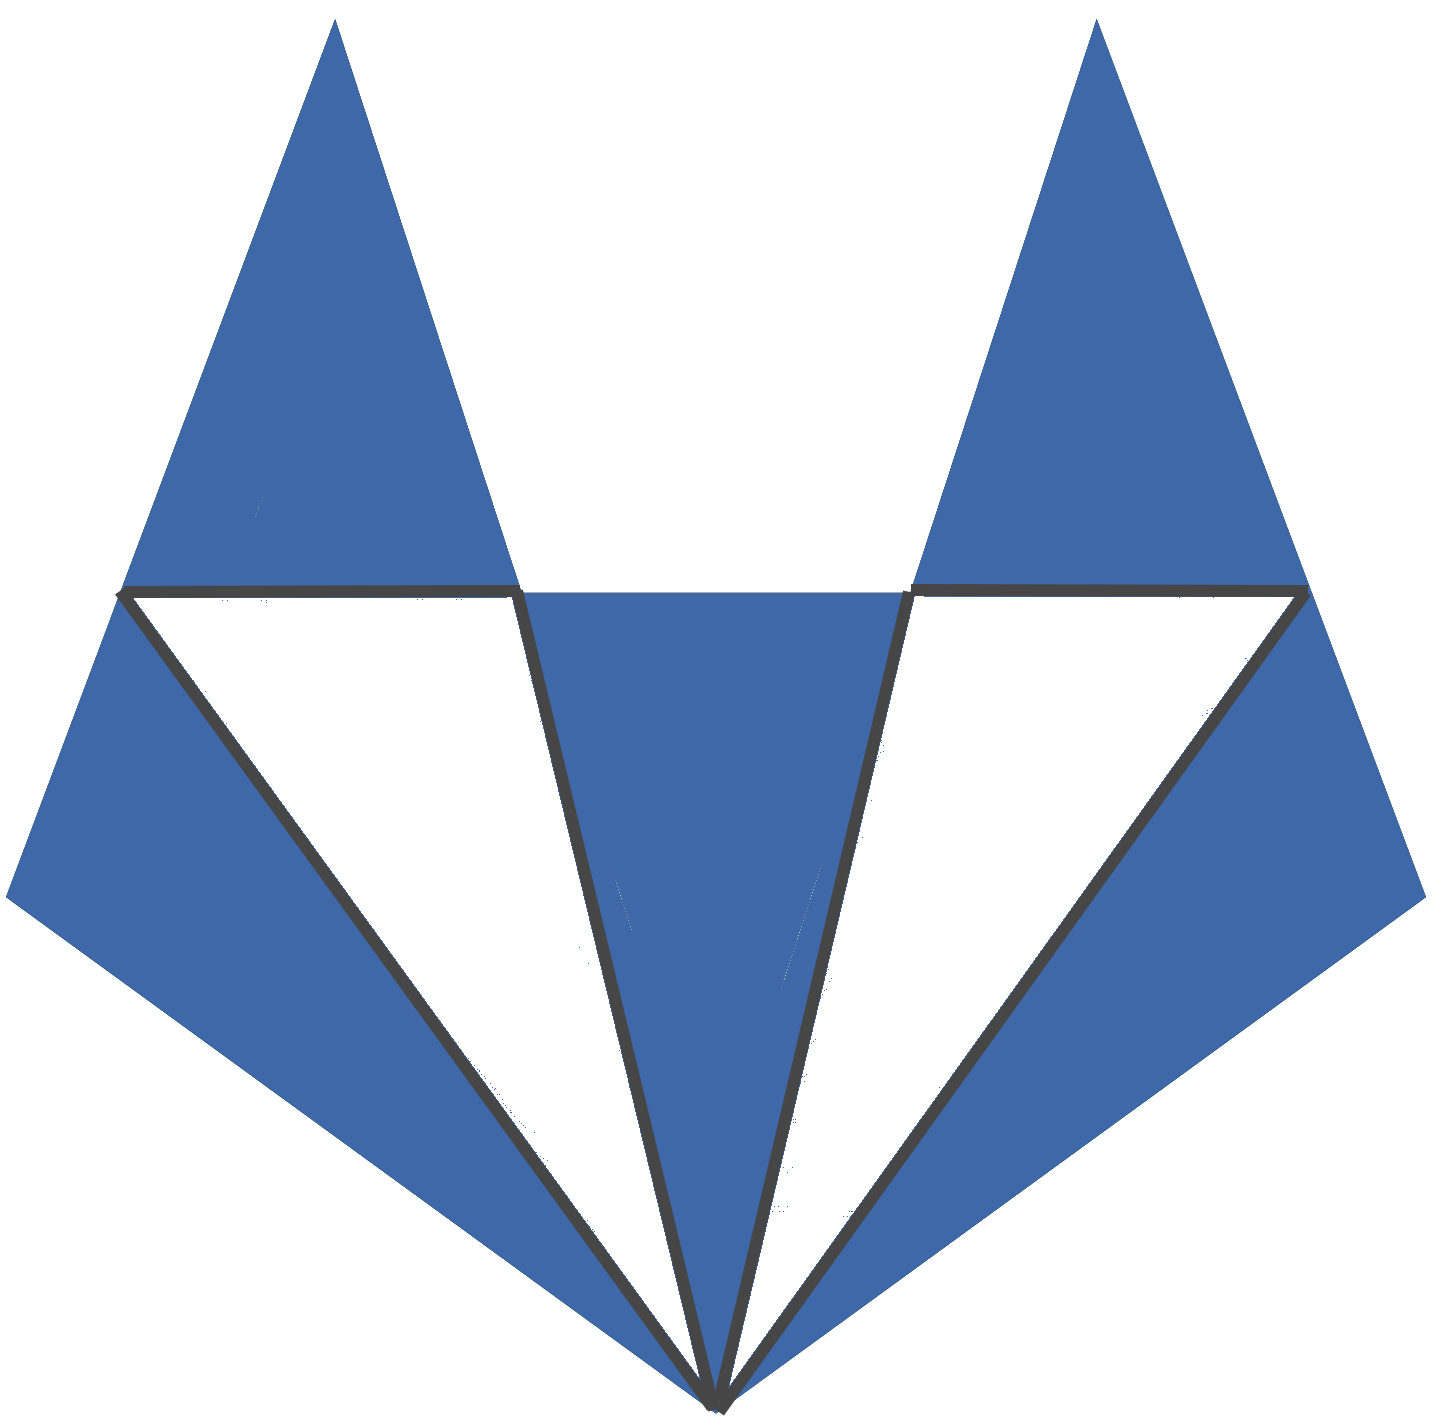 Icon of the fox of gitlab, which is blue in color.